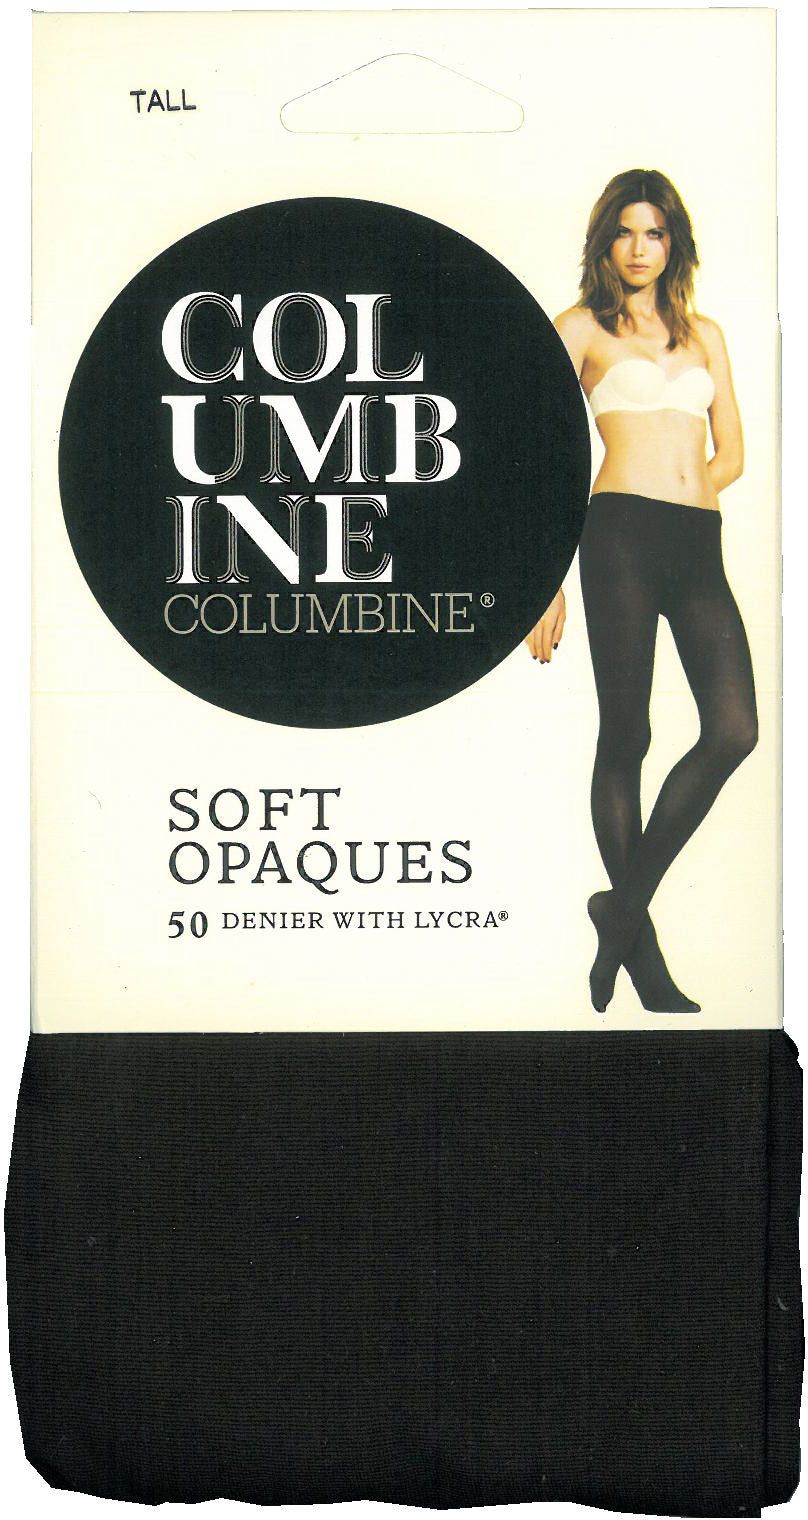 Columbine Opaque 50 denier pantyhose 106